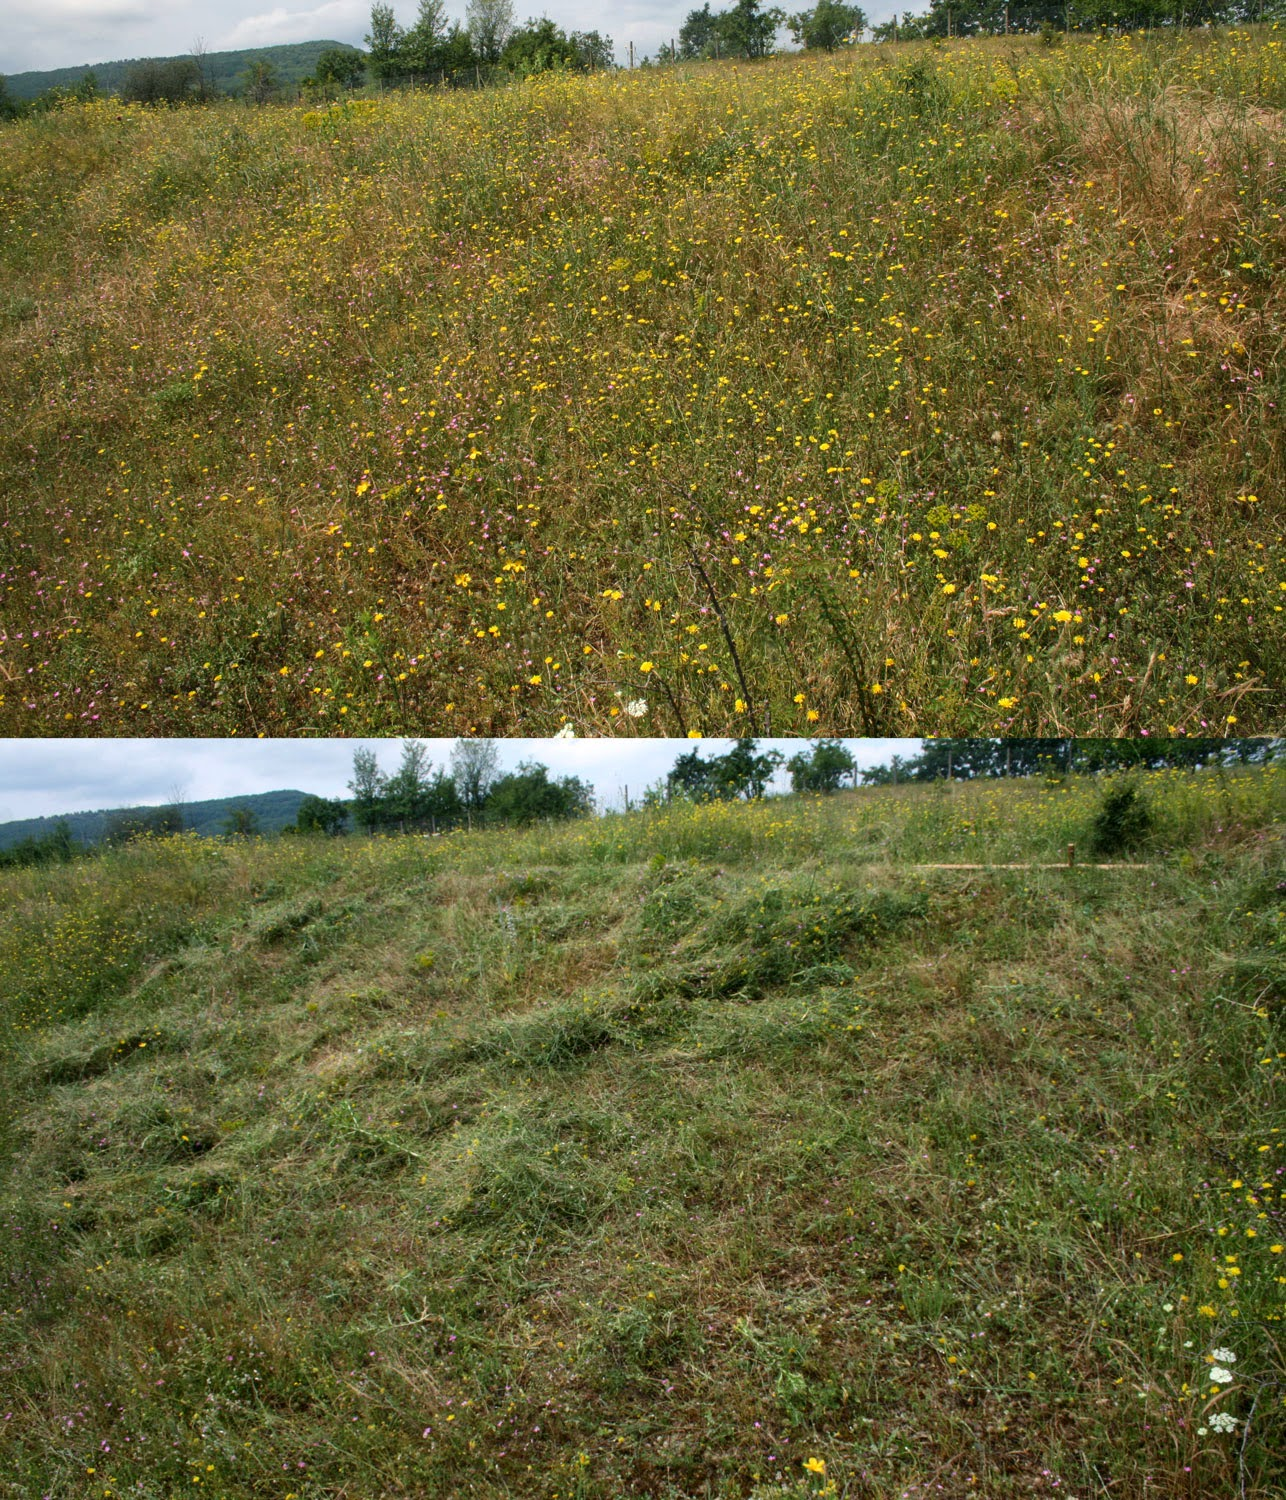 The bank before and after scything